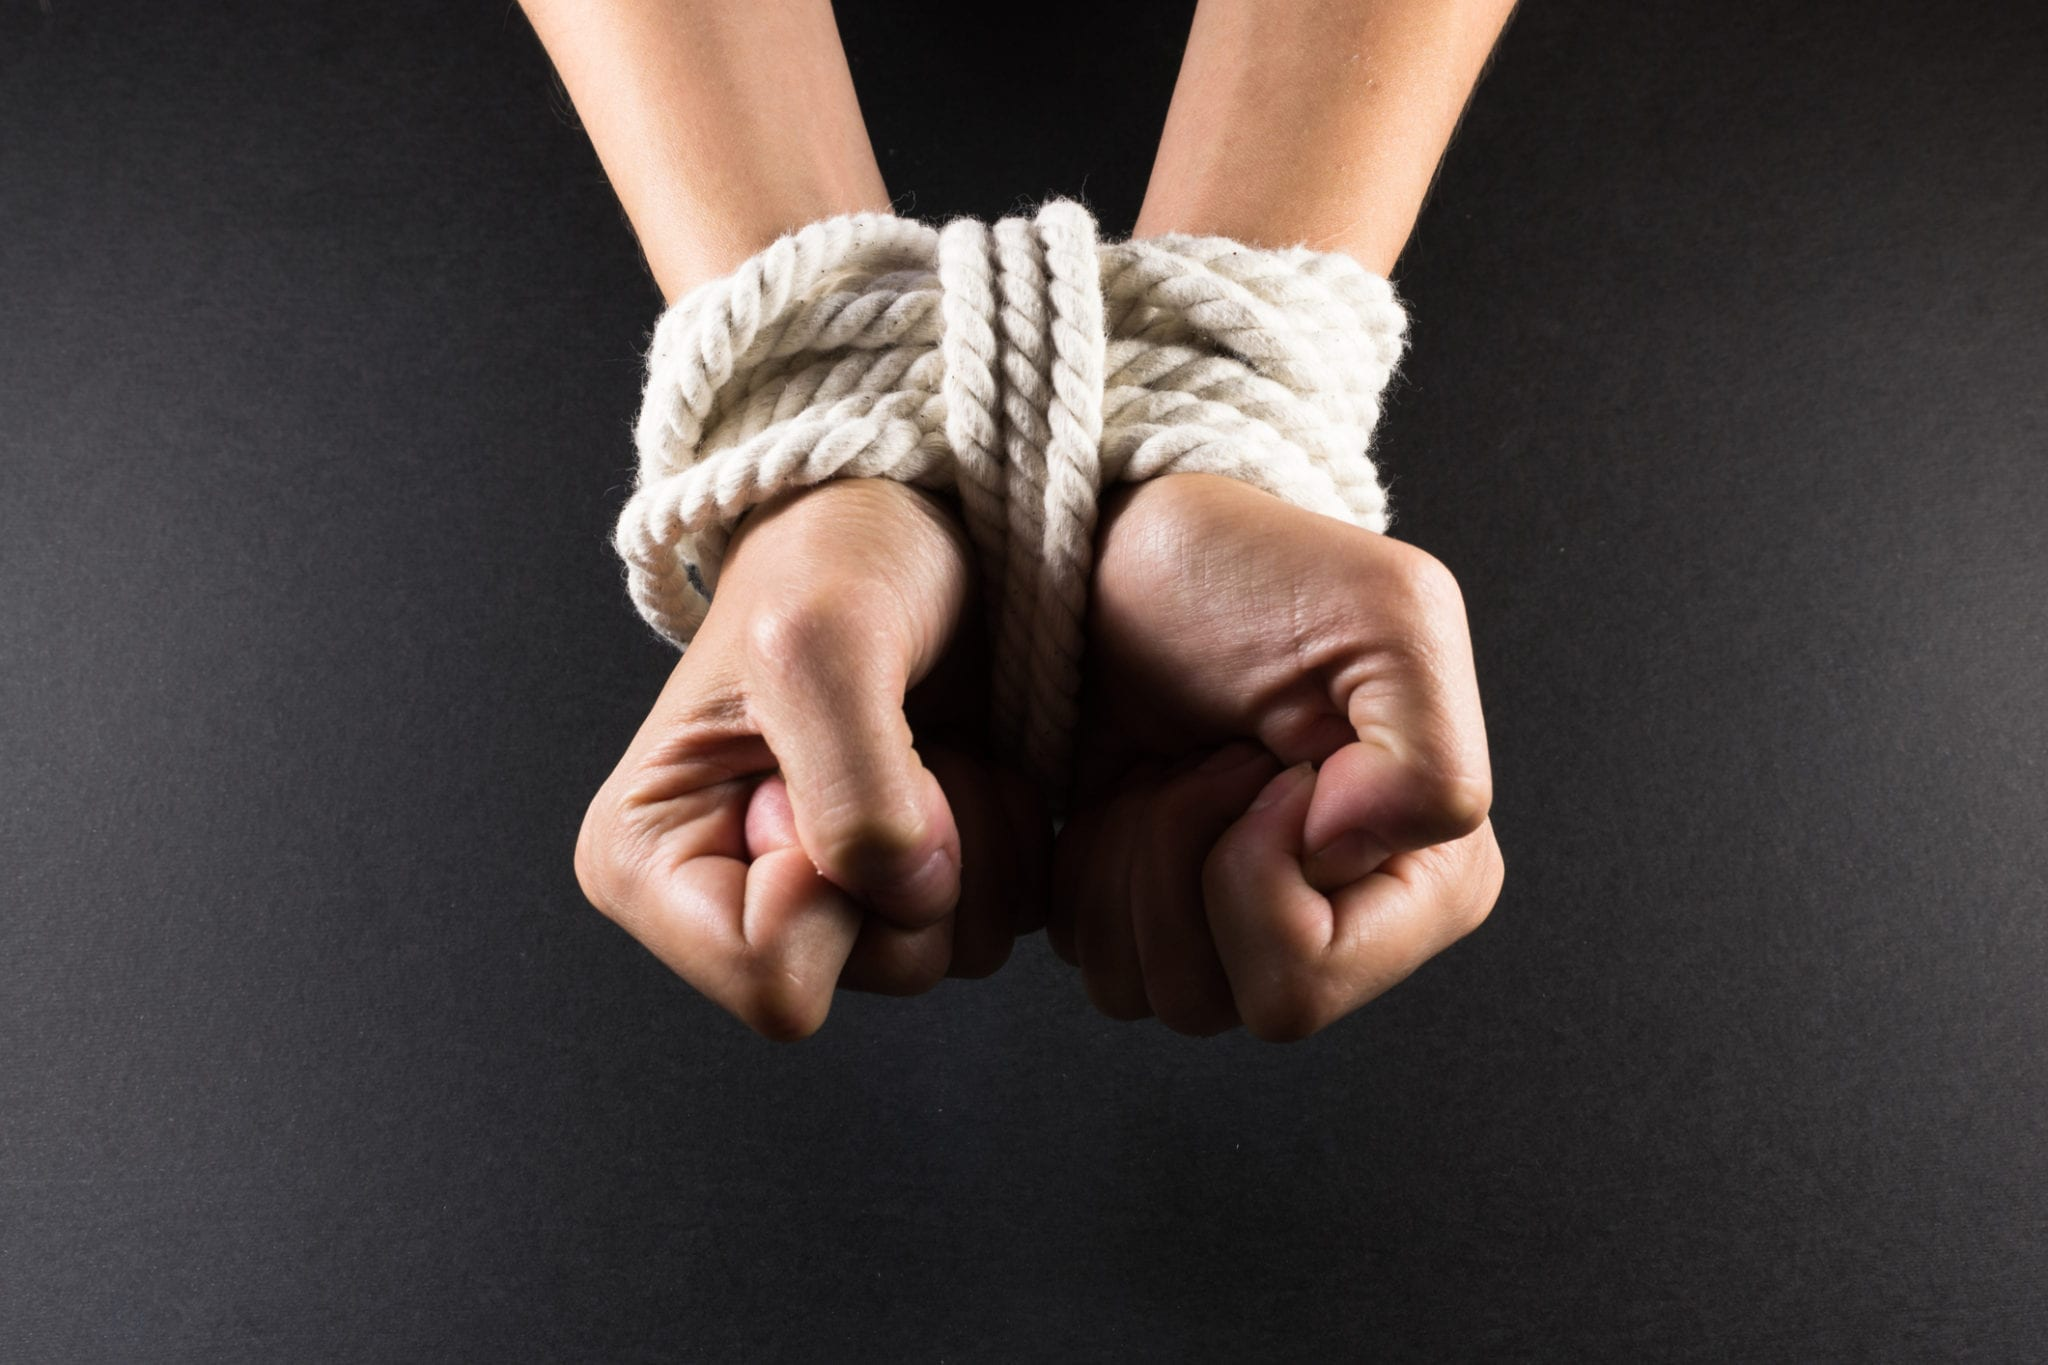 Female hands in bondage tied up with white rope.